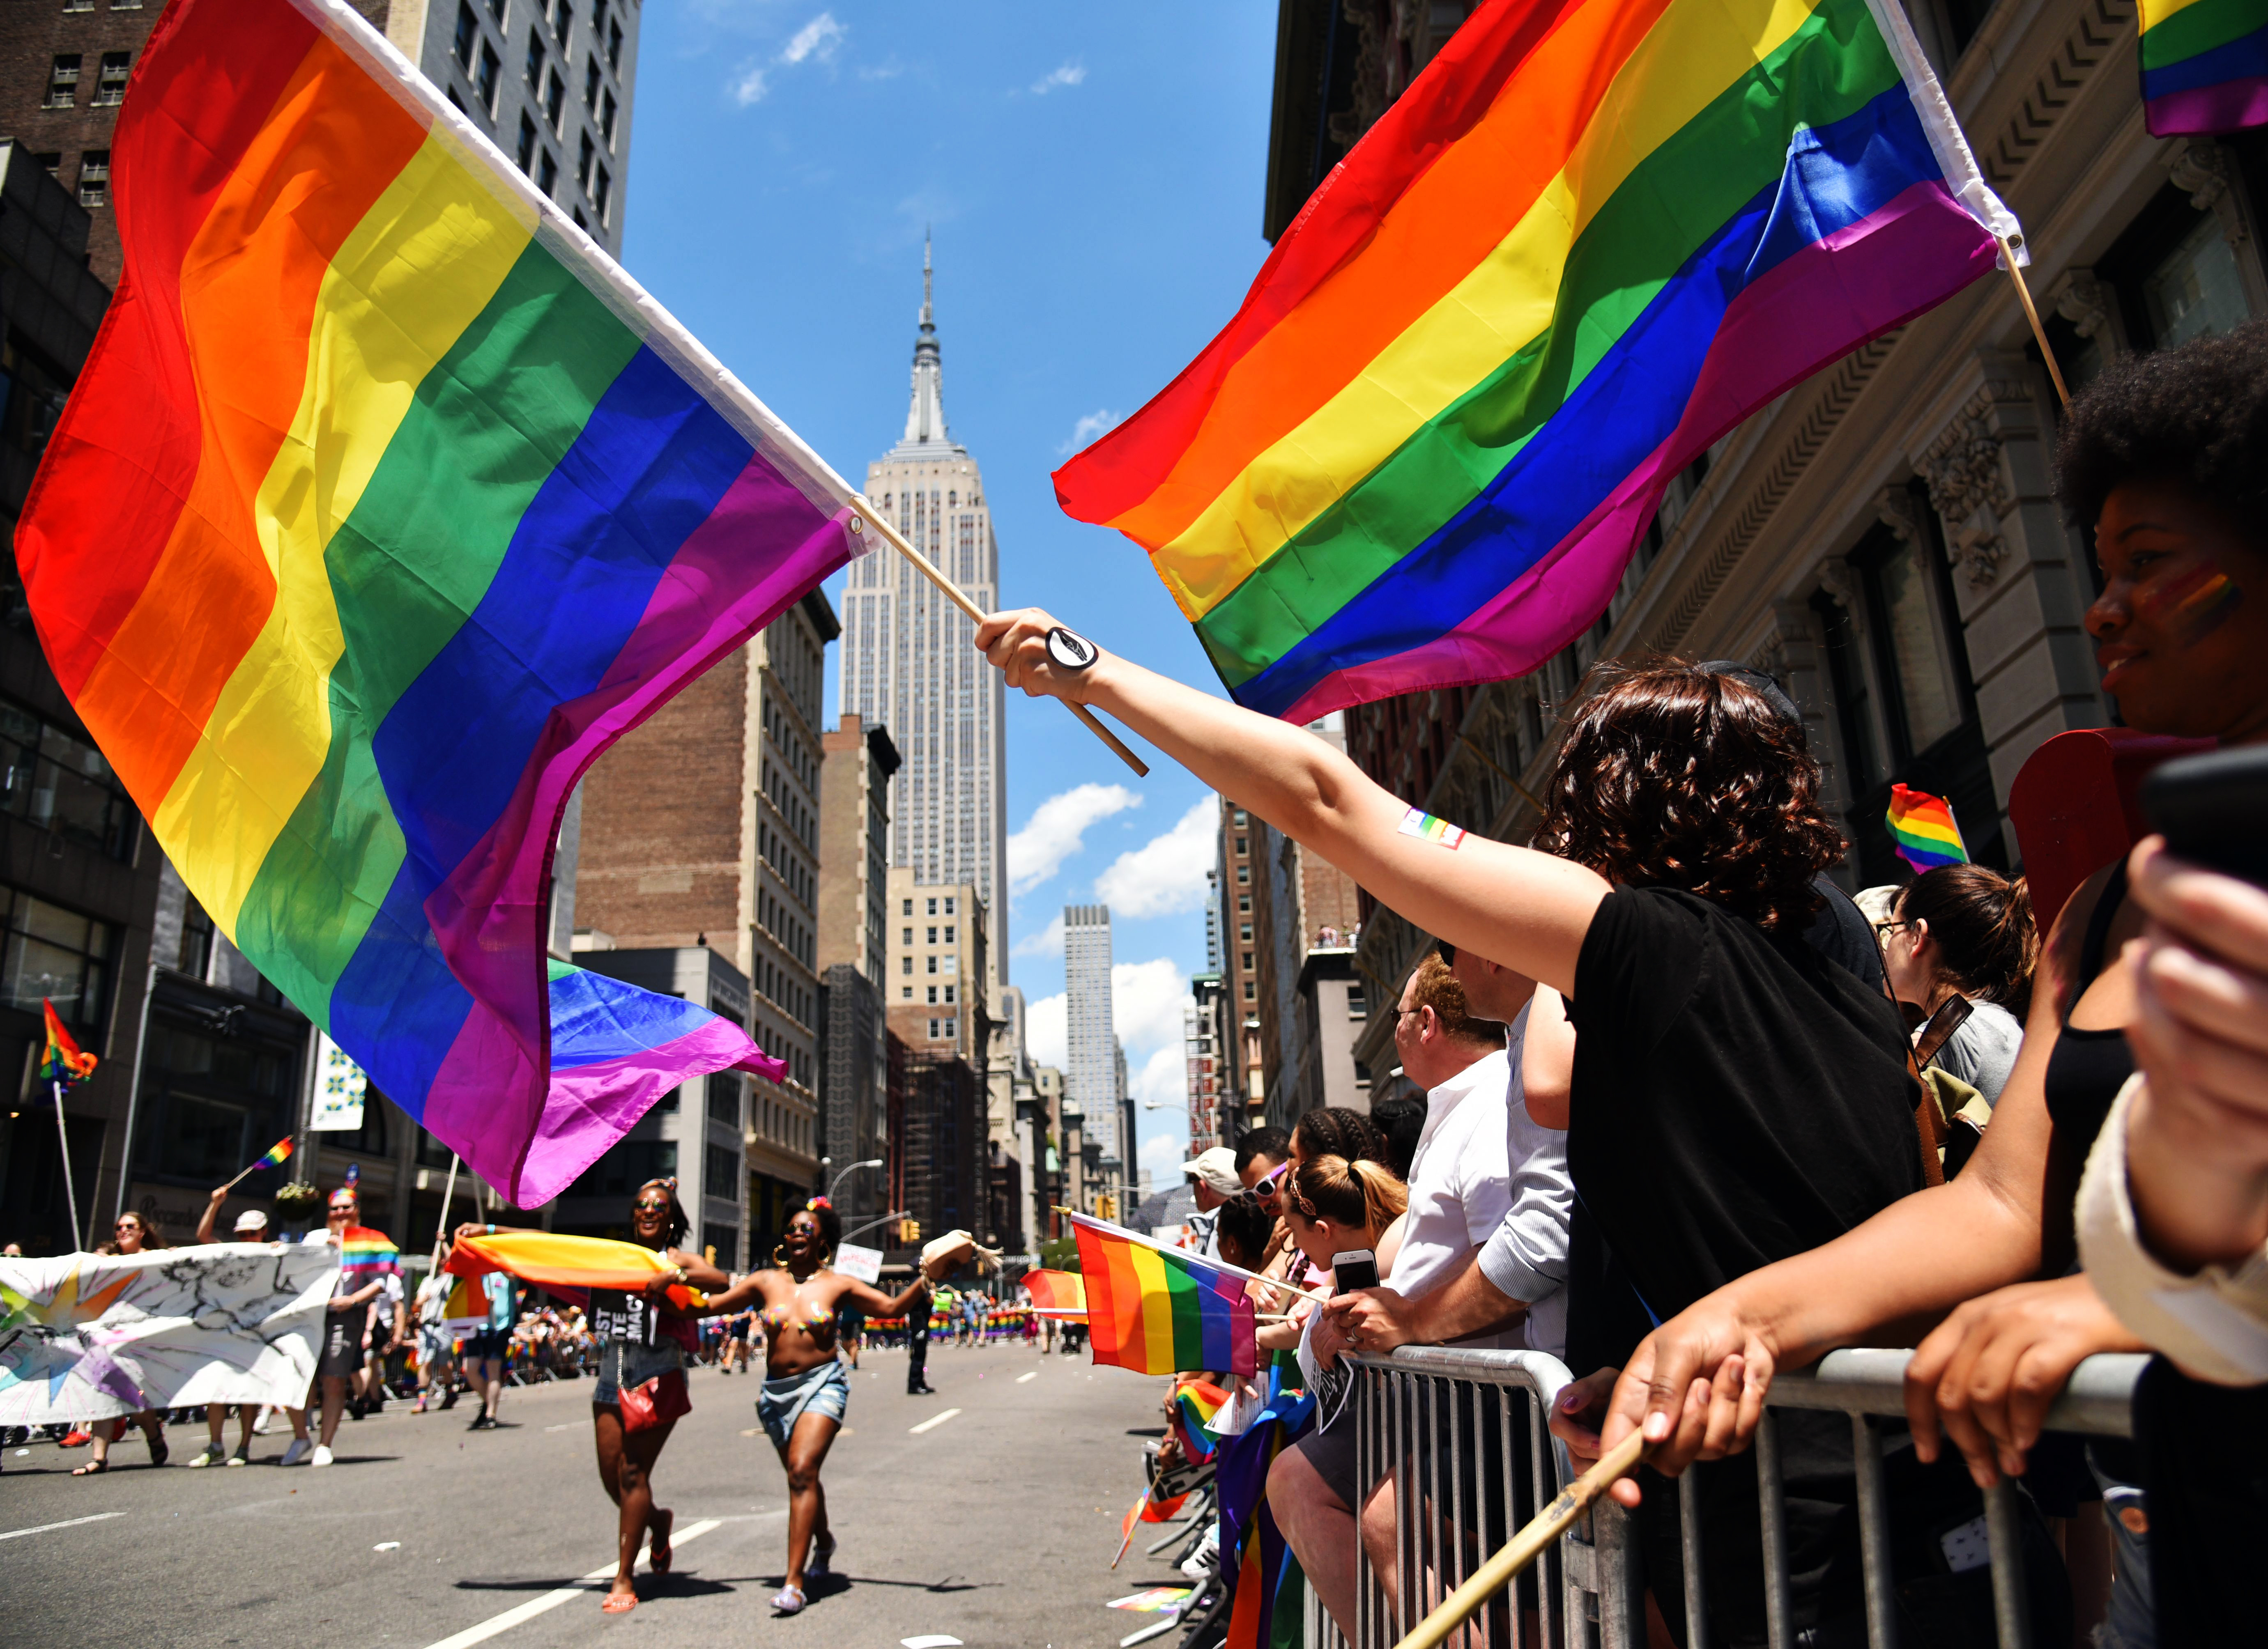 and see pictures and video of New York Gay Pride